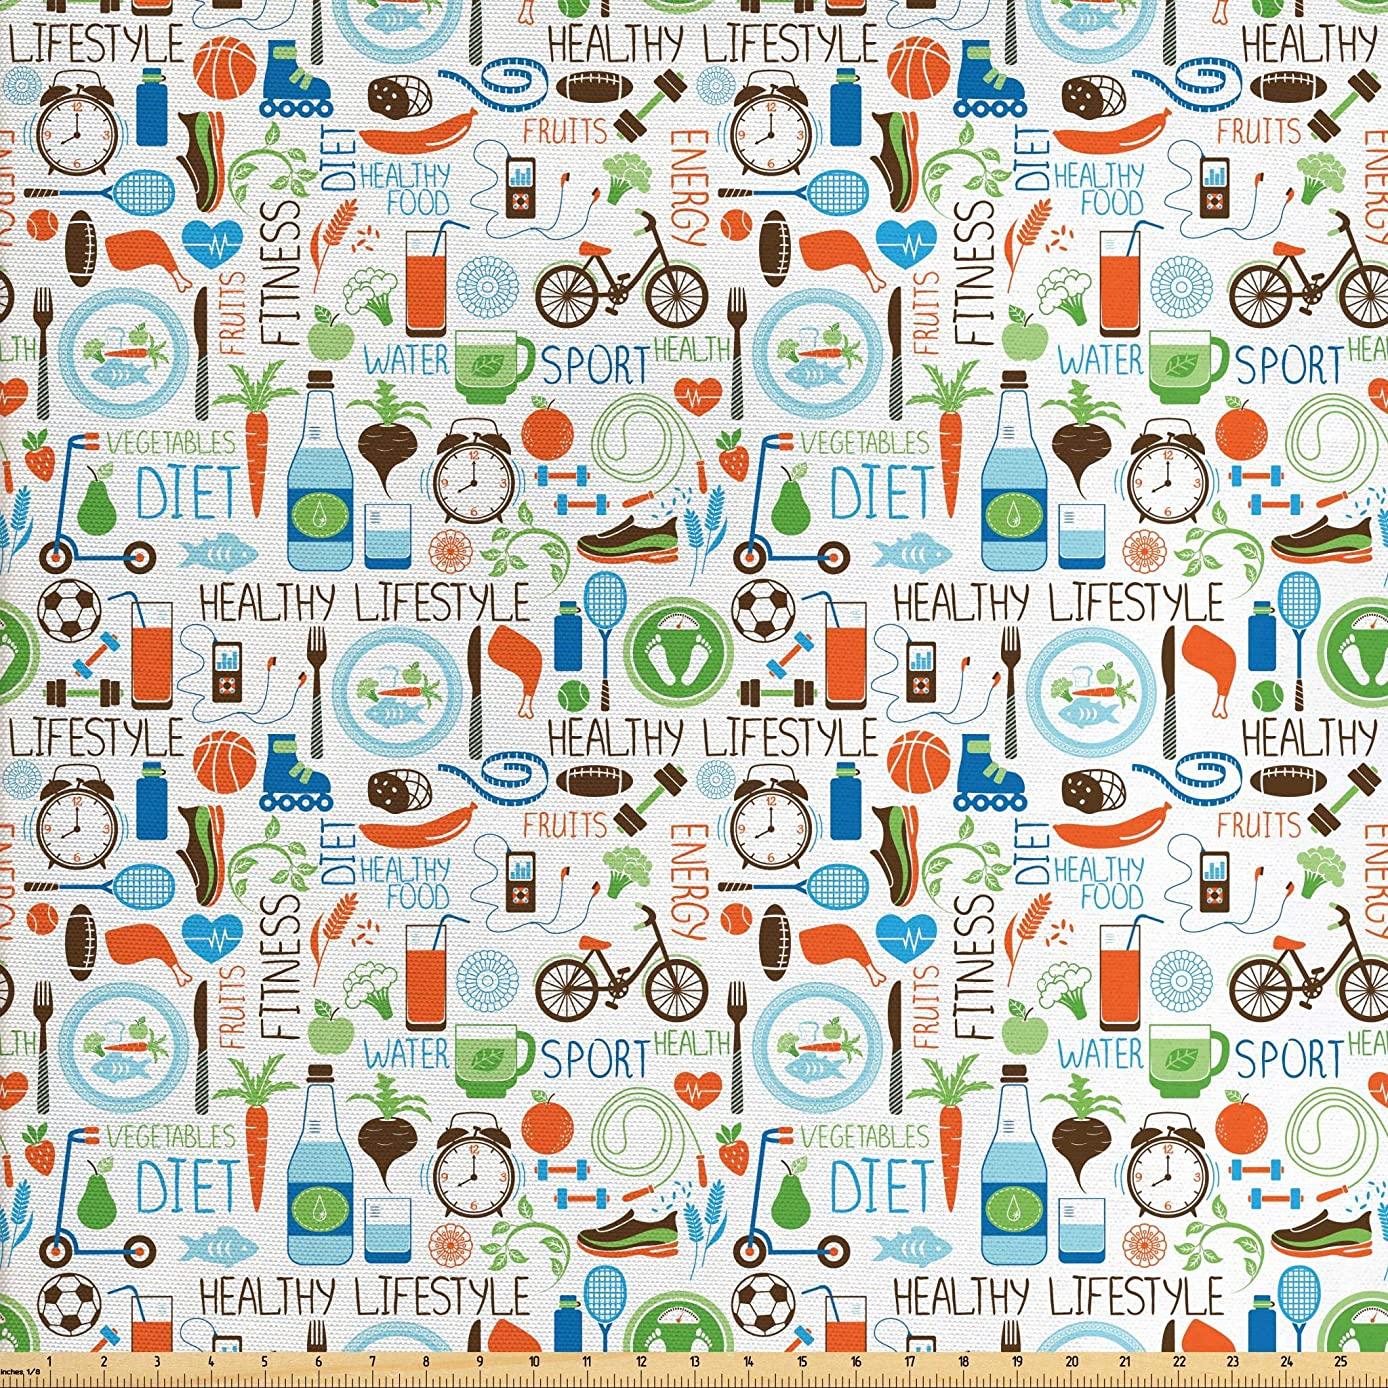 Ambesonne Fitness Fabric The Yard, Sports Diet Balance Nutrition Bicycle Organic Fresh Food Poultry Juice Vitality, Decorative Fabric Upholstery Home Accents, 1 Yard, Multicolor